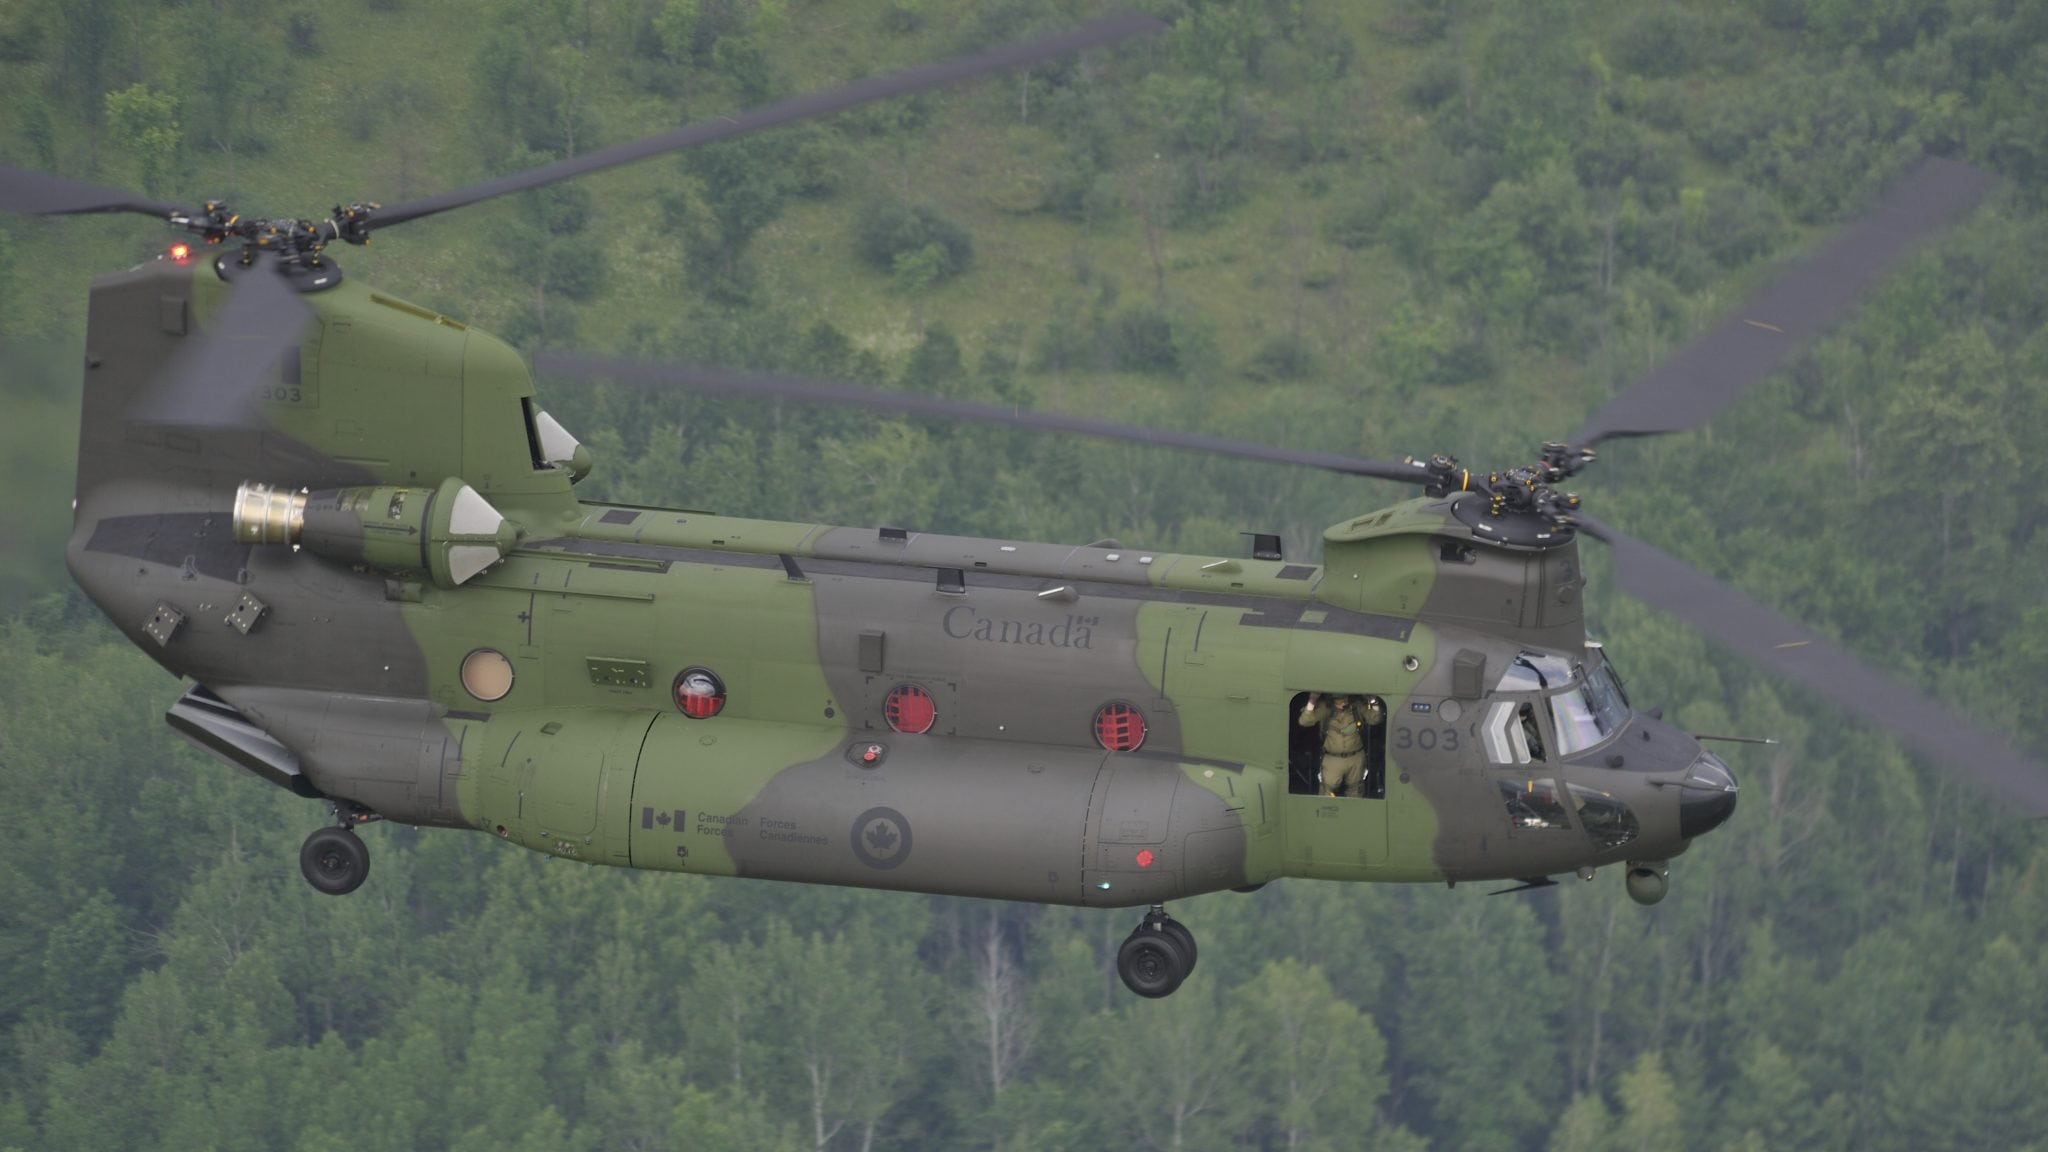 Royal Canadian Air Force CH-147F Chinook